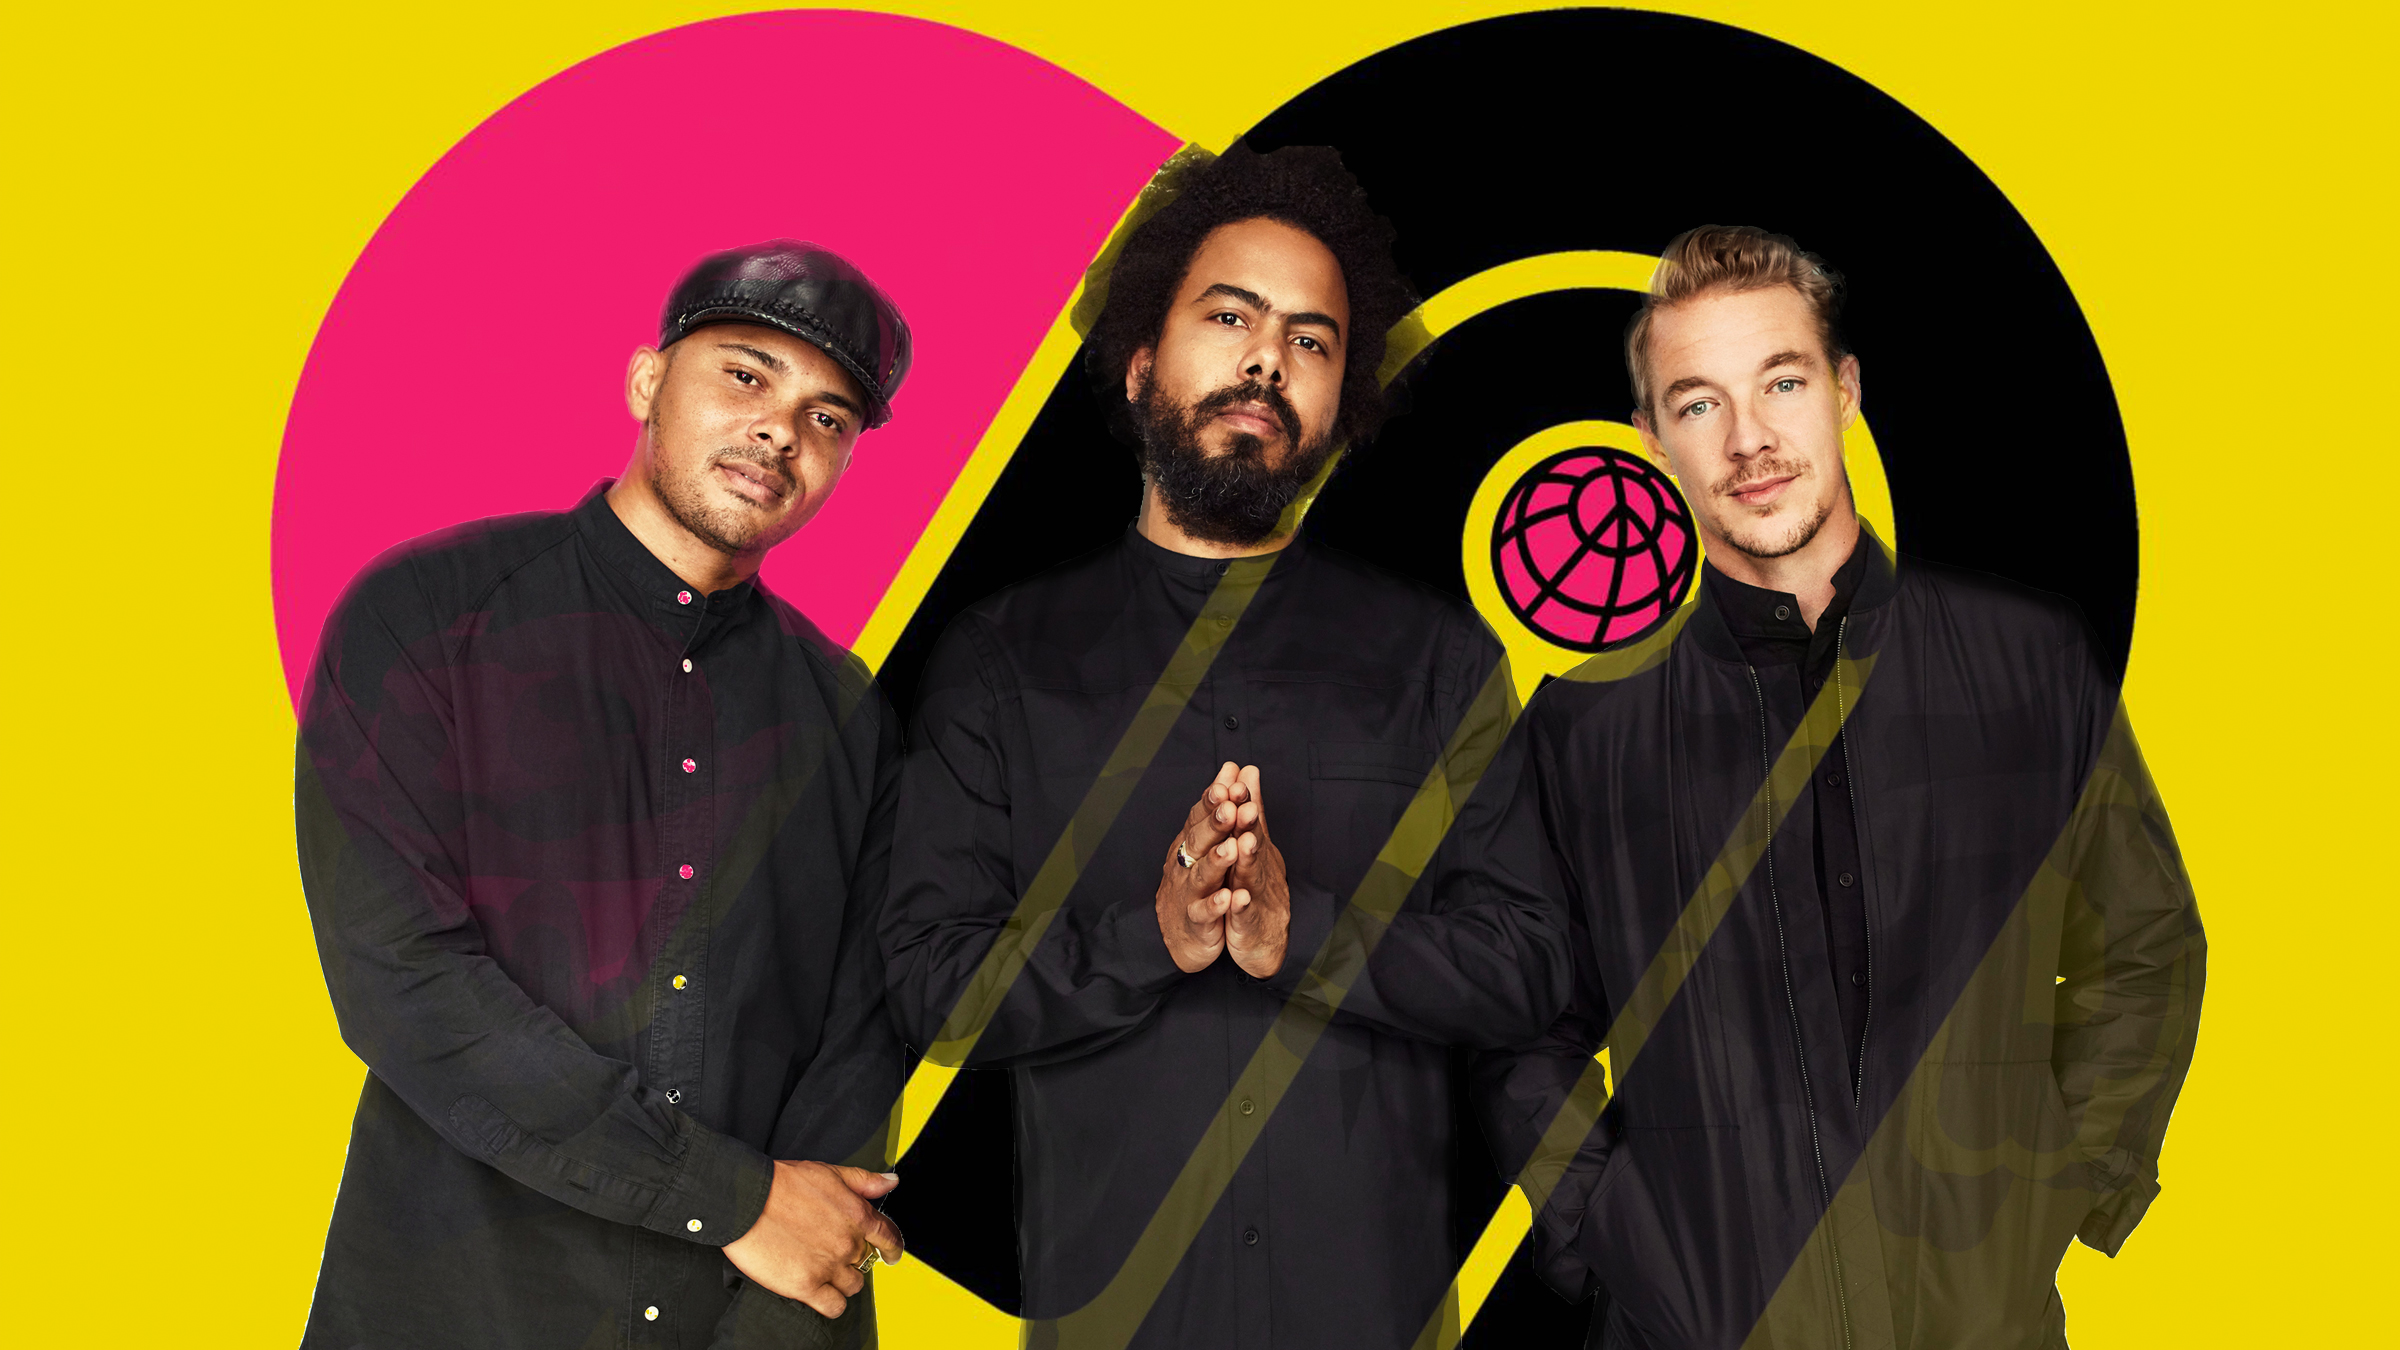 Teaser major lazer kunst